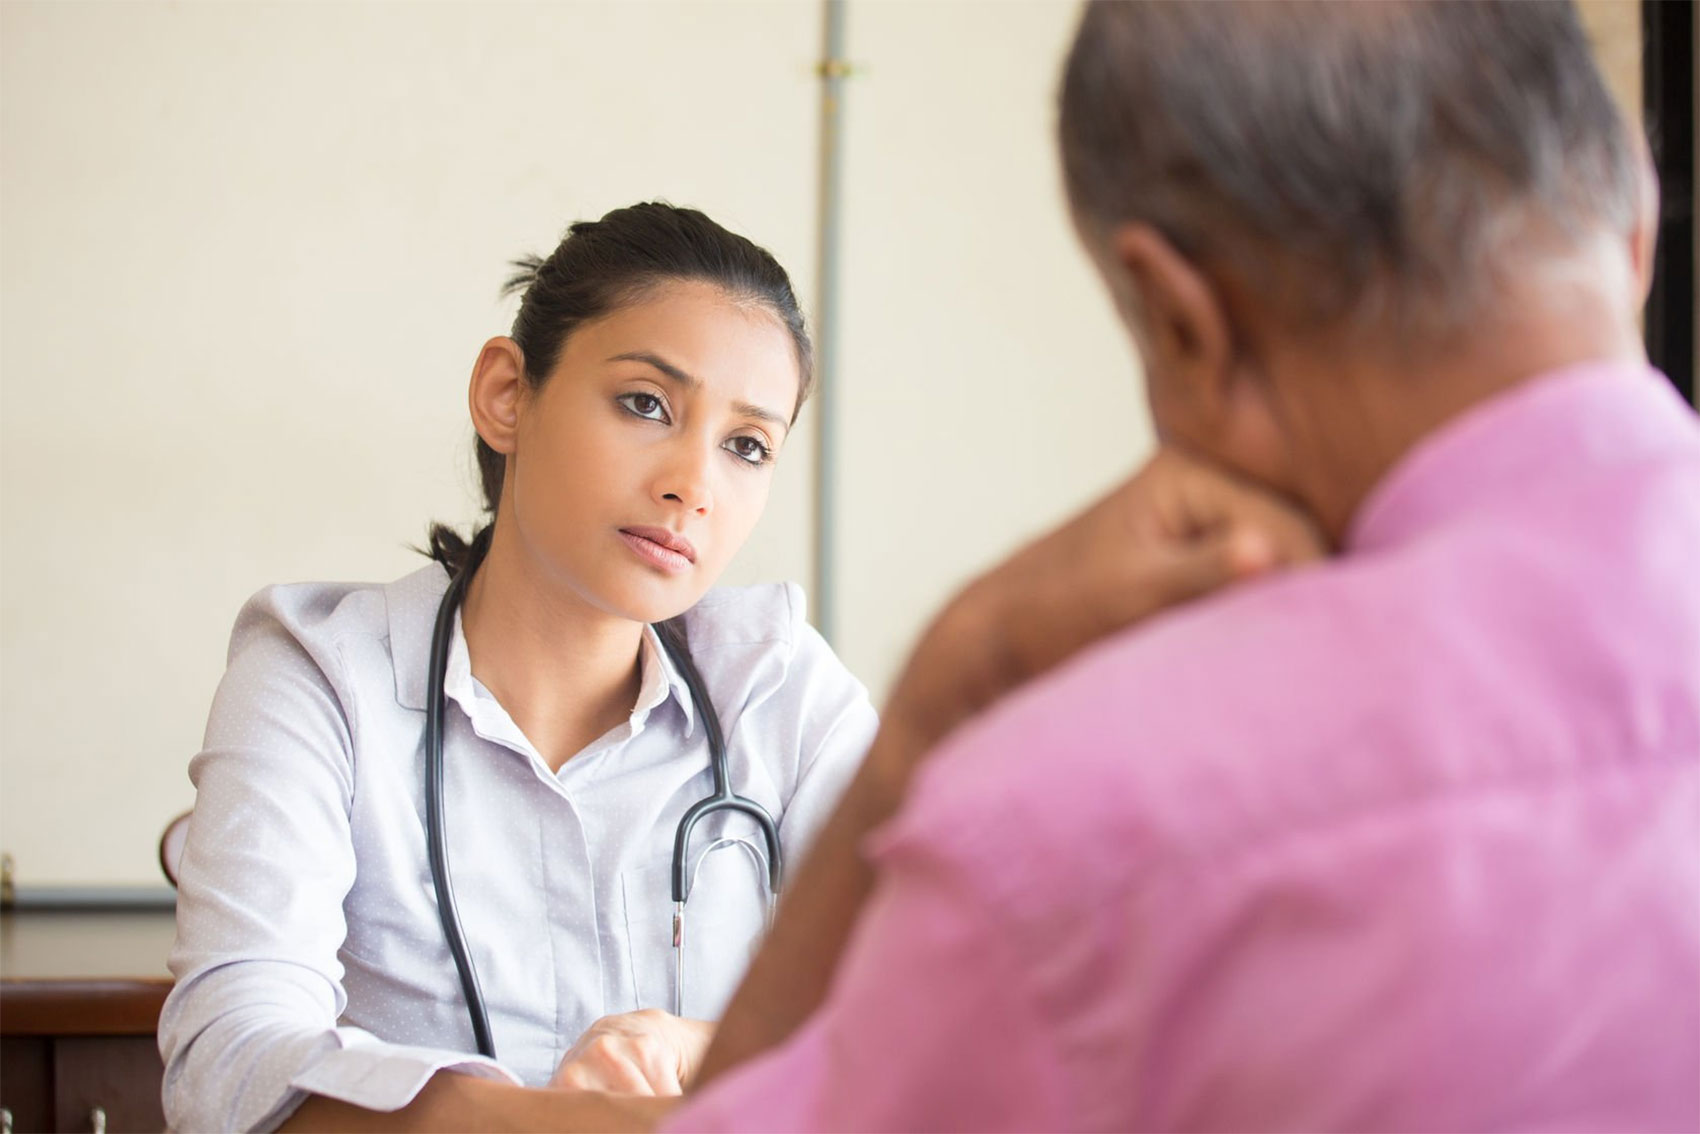 Patient talking with healthcare professional